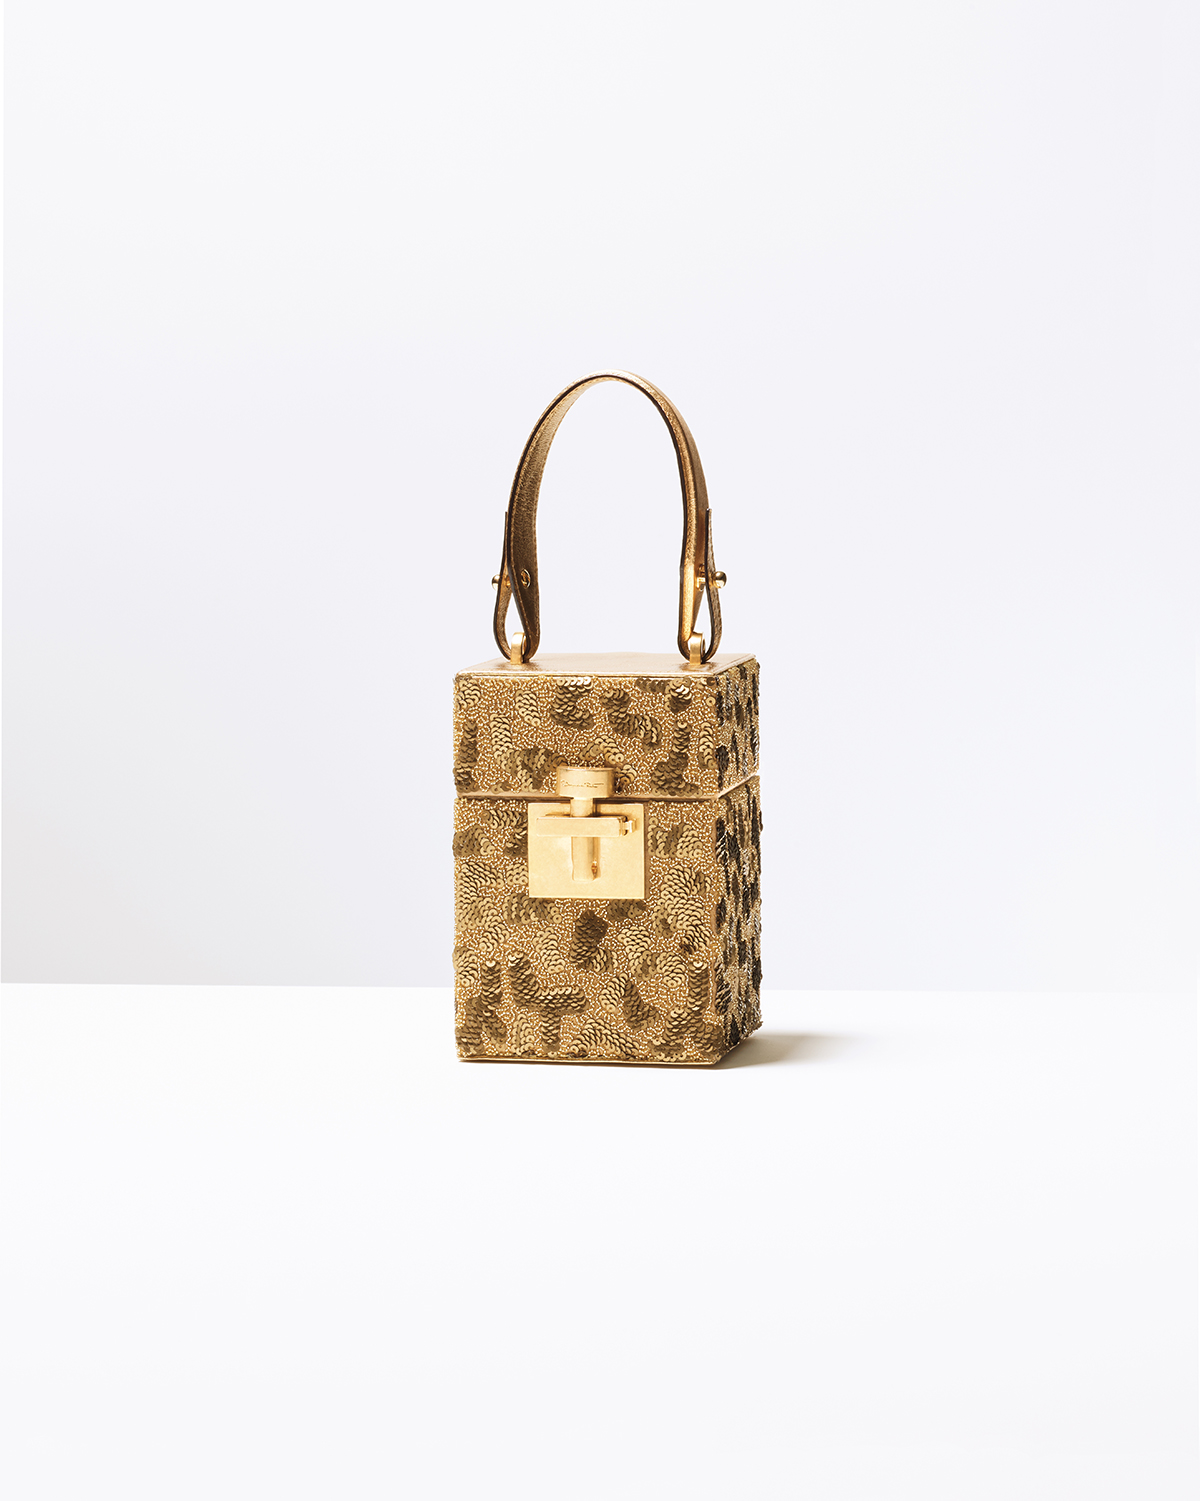 GOLD SEQUIN MINI ALIBI BAG